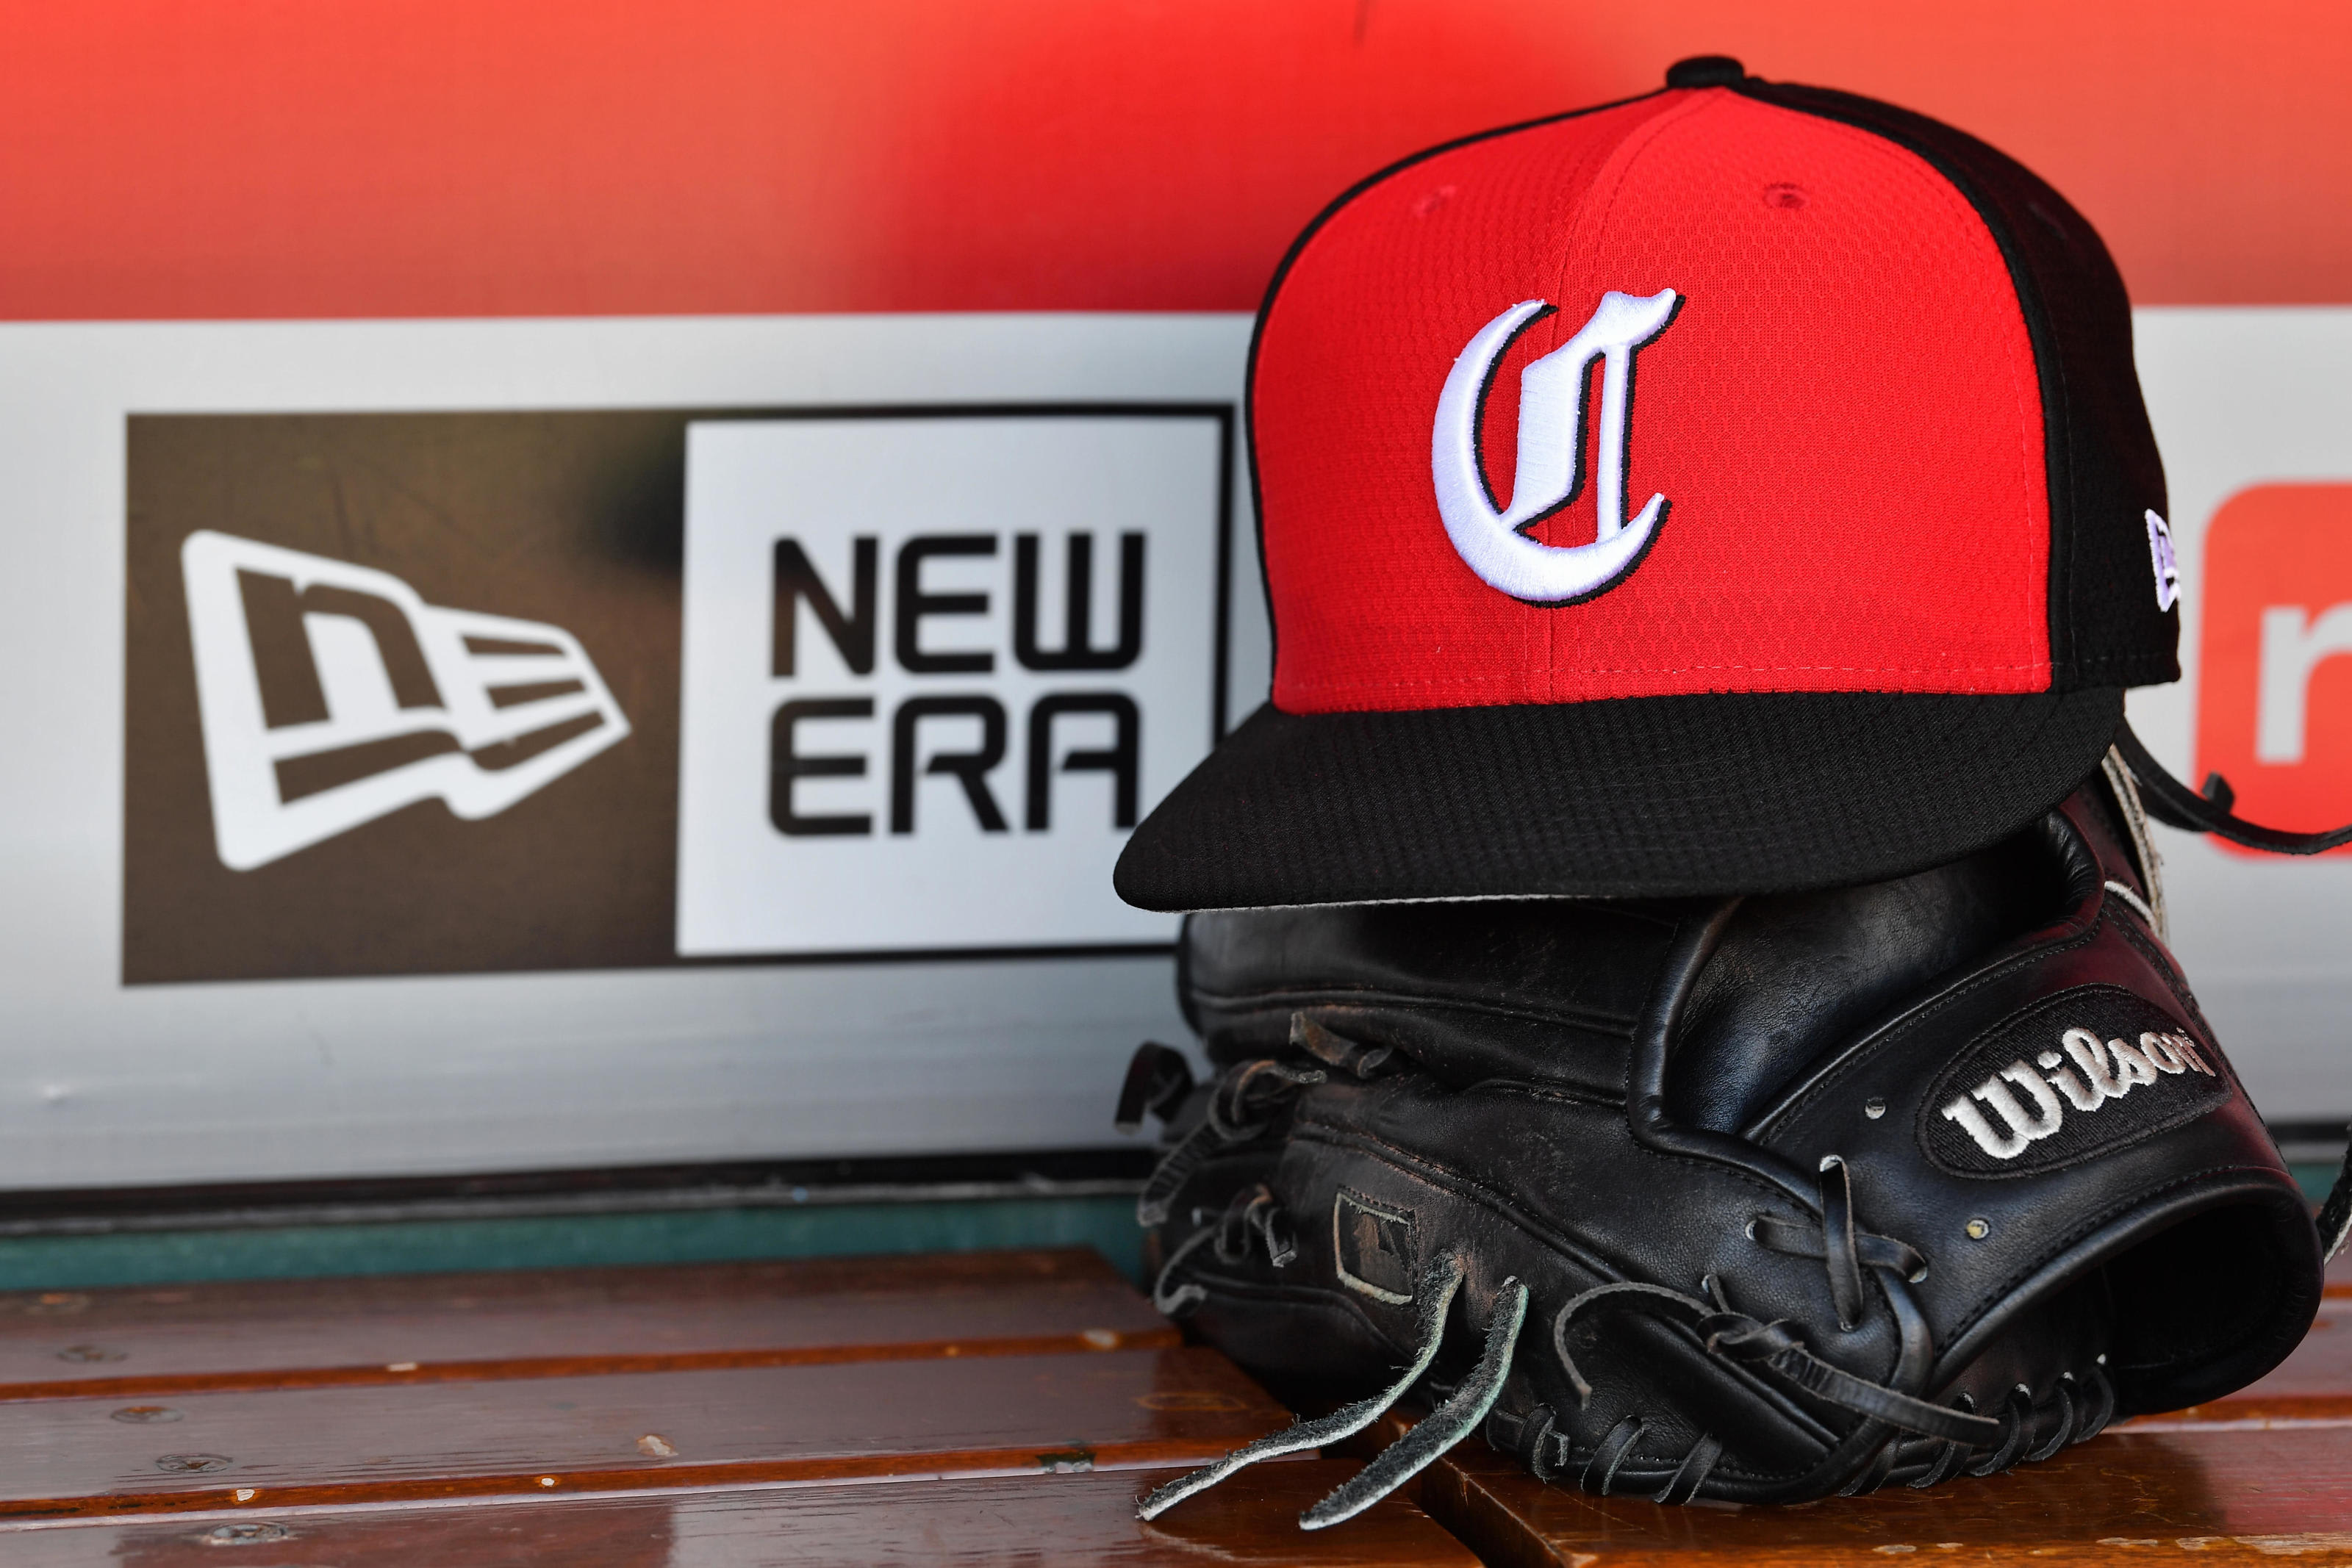 A close up view of a hat and baseball glove in the dugout with the New Era logo before a game between the Cincinnati Reds and the Chicago Cubs